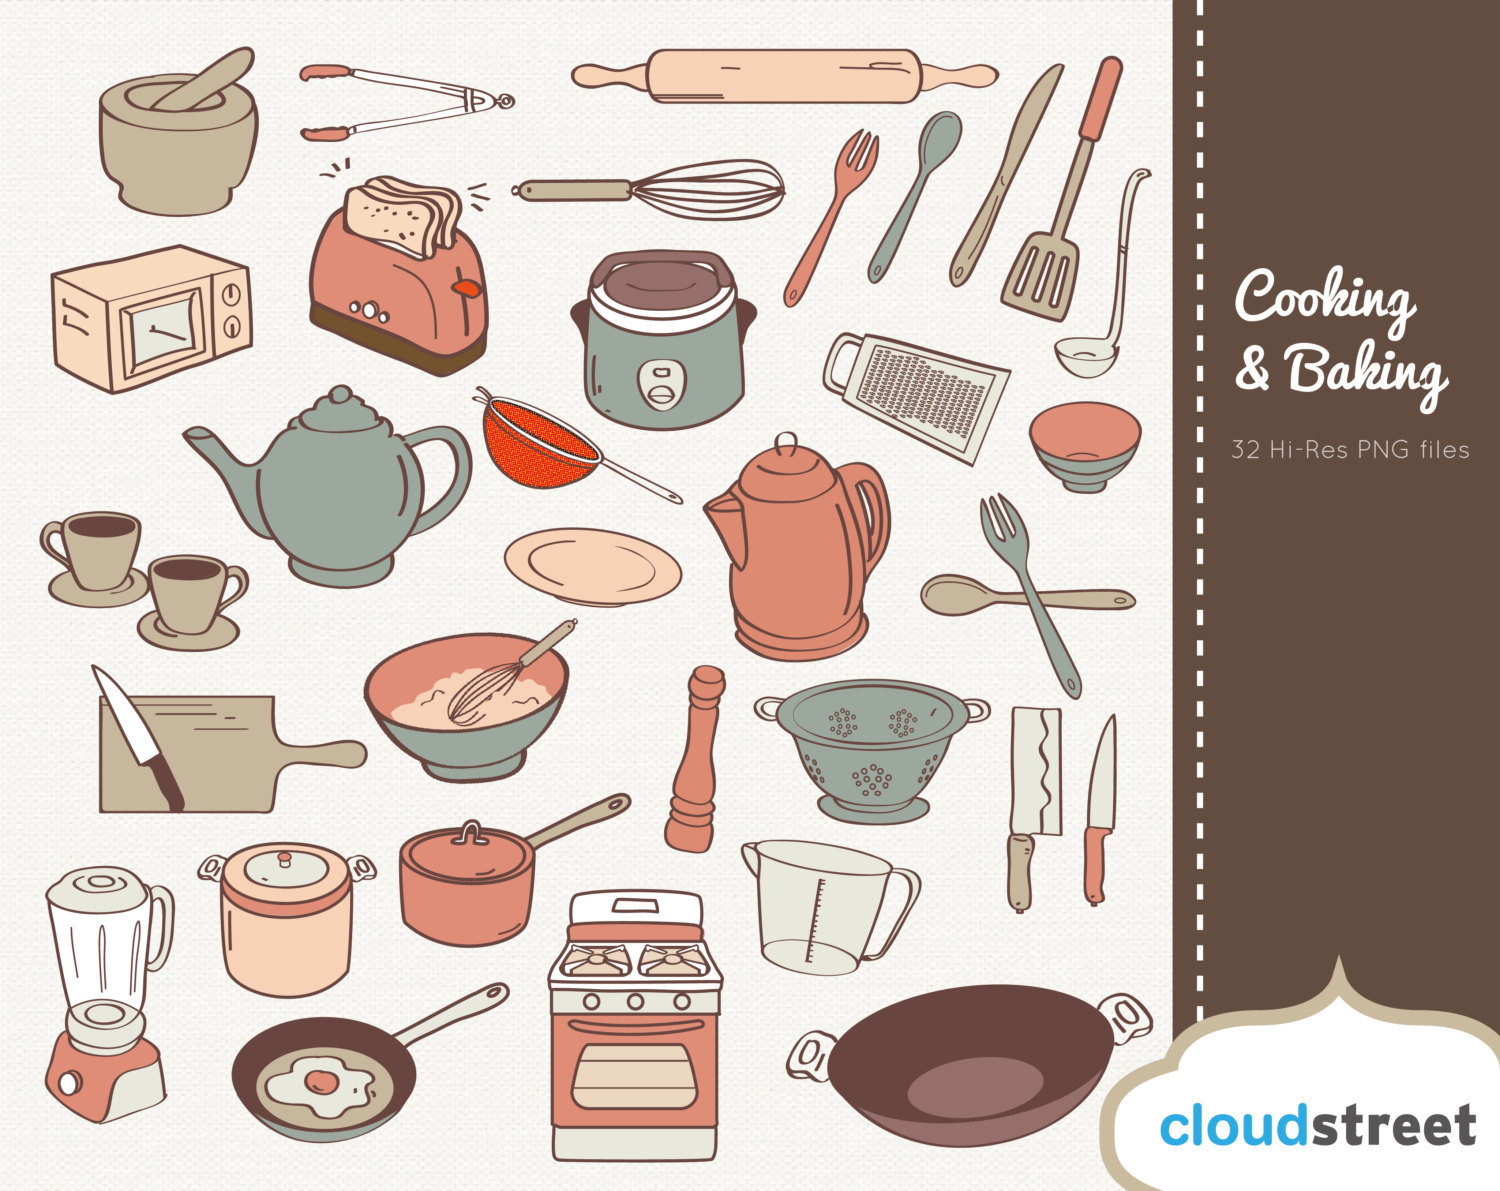 Border kitchen utensils clipart clipart suggest for Art and cuisine cookware review